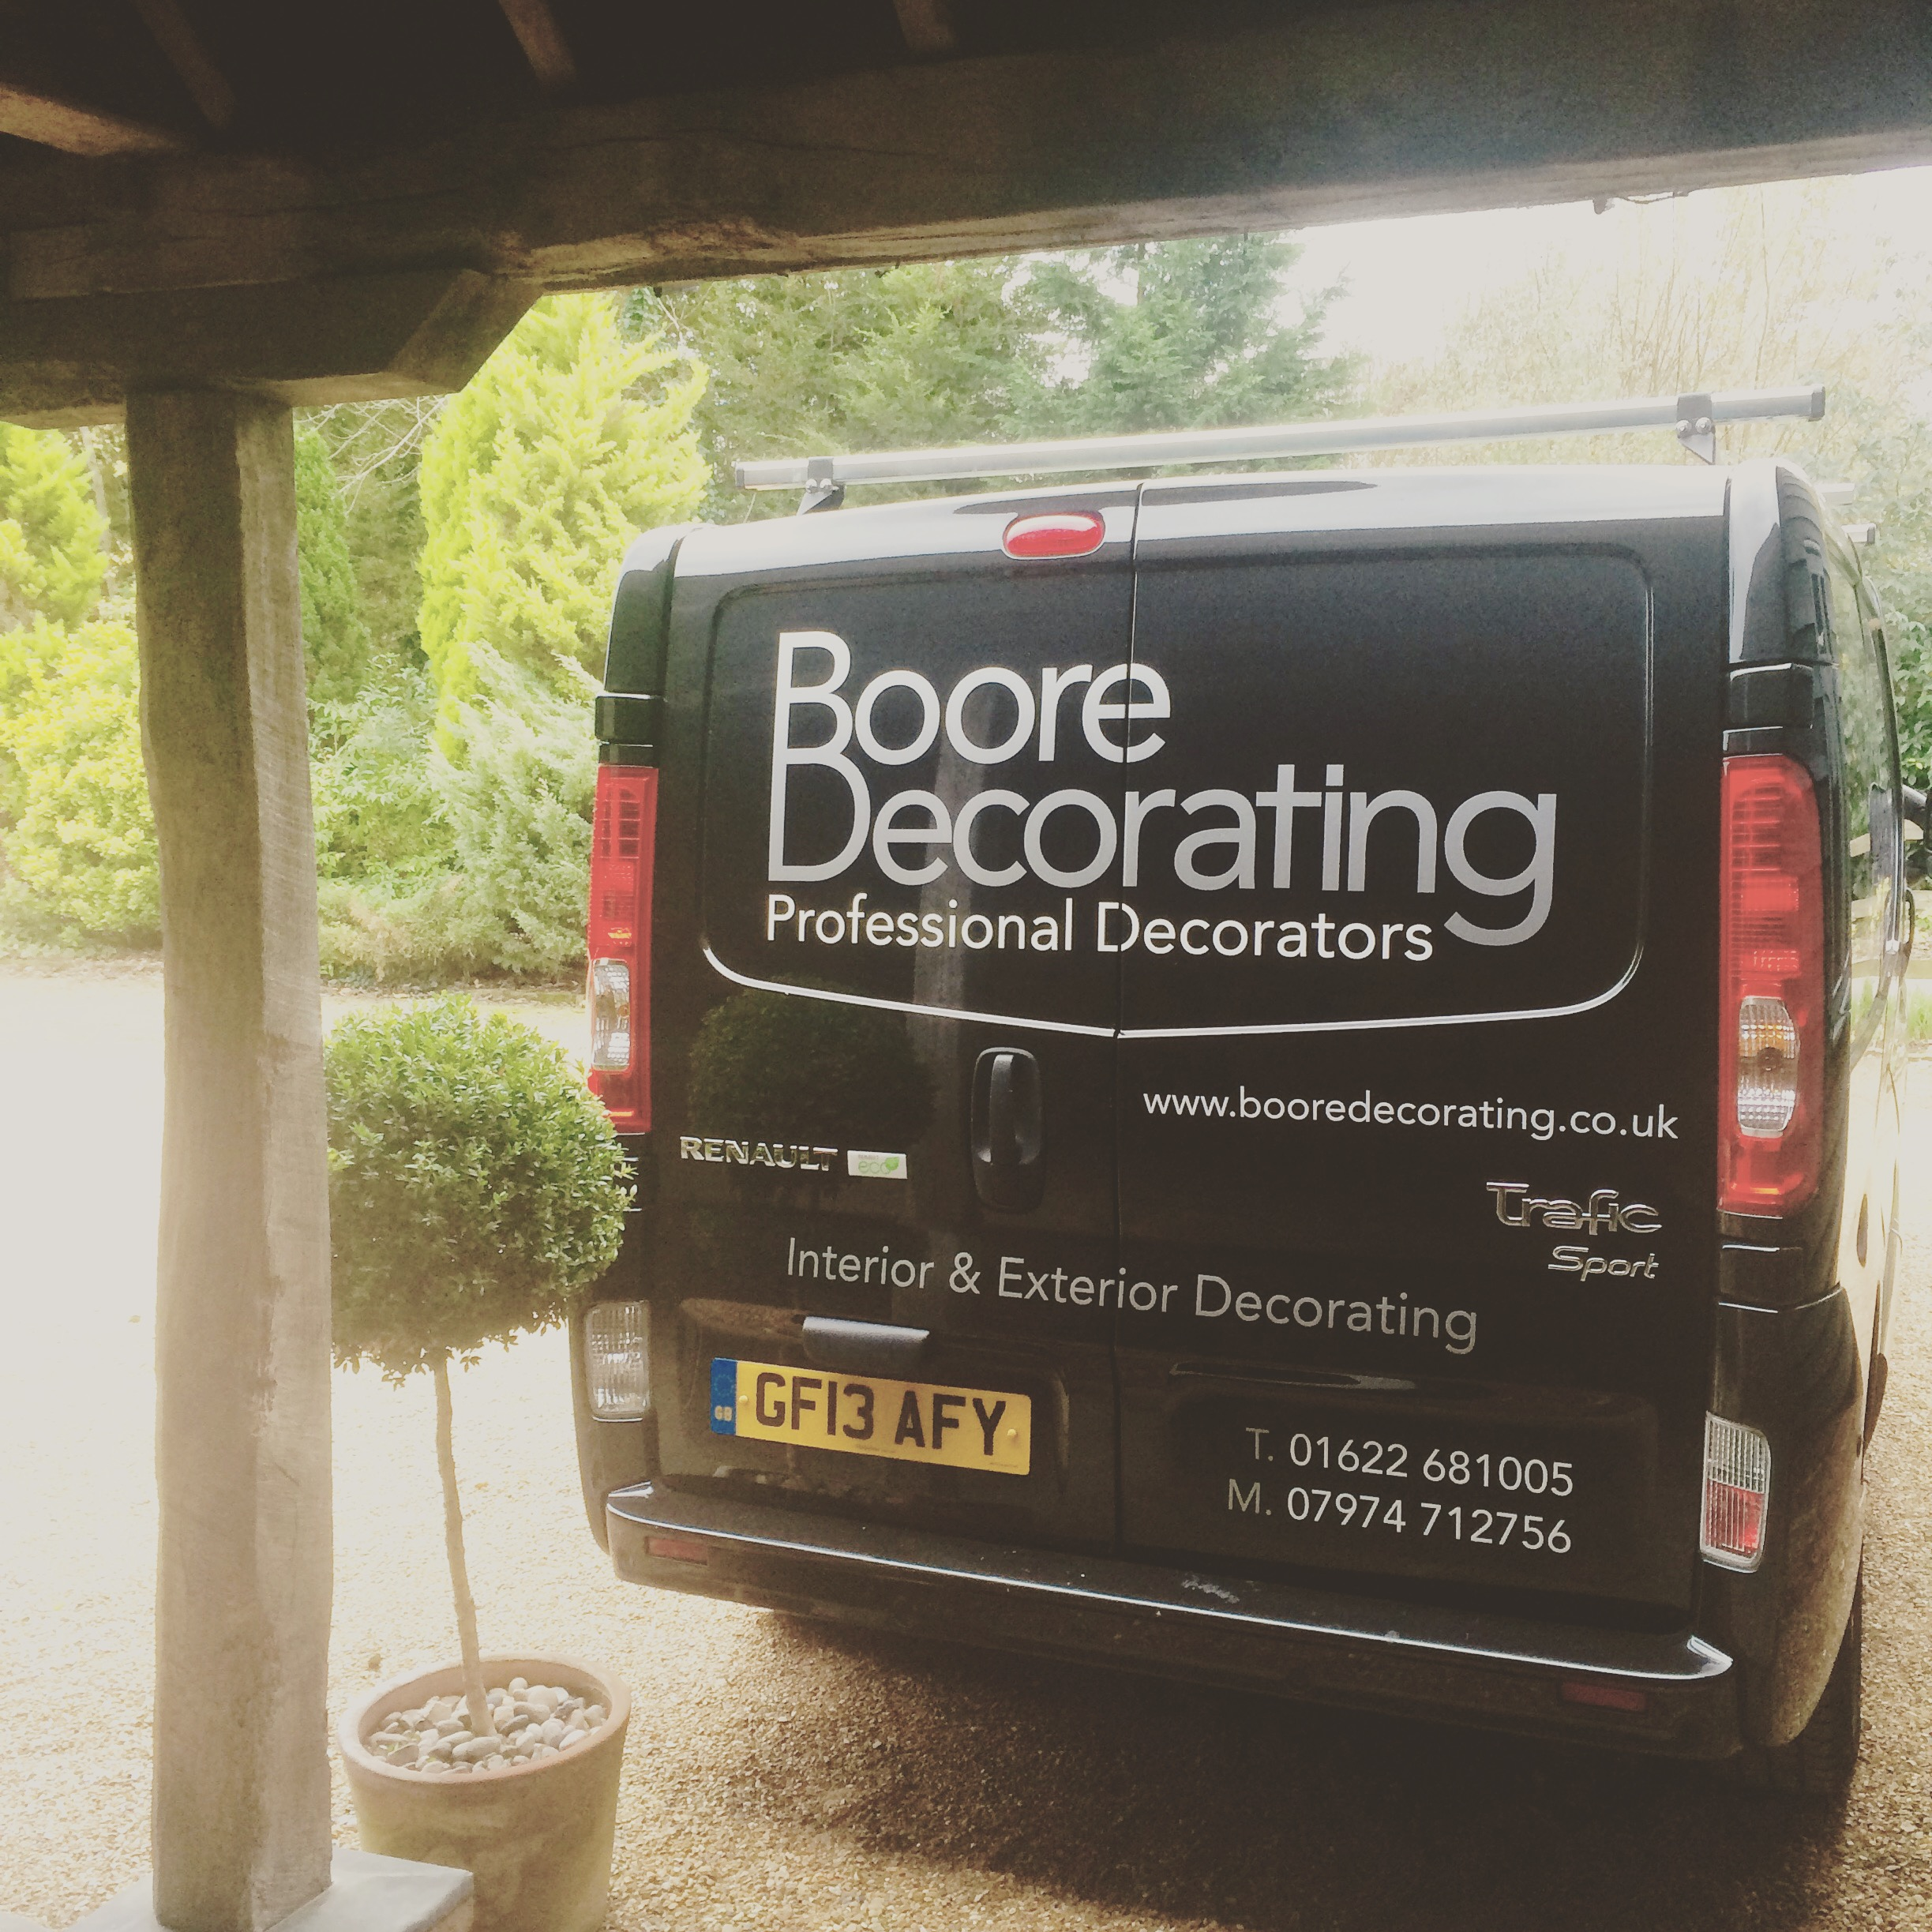 Boore Decorating